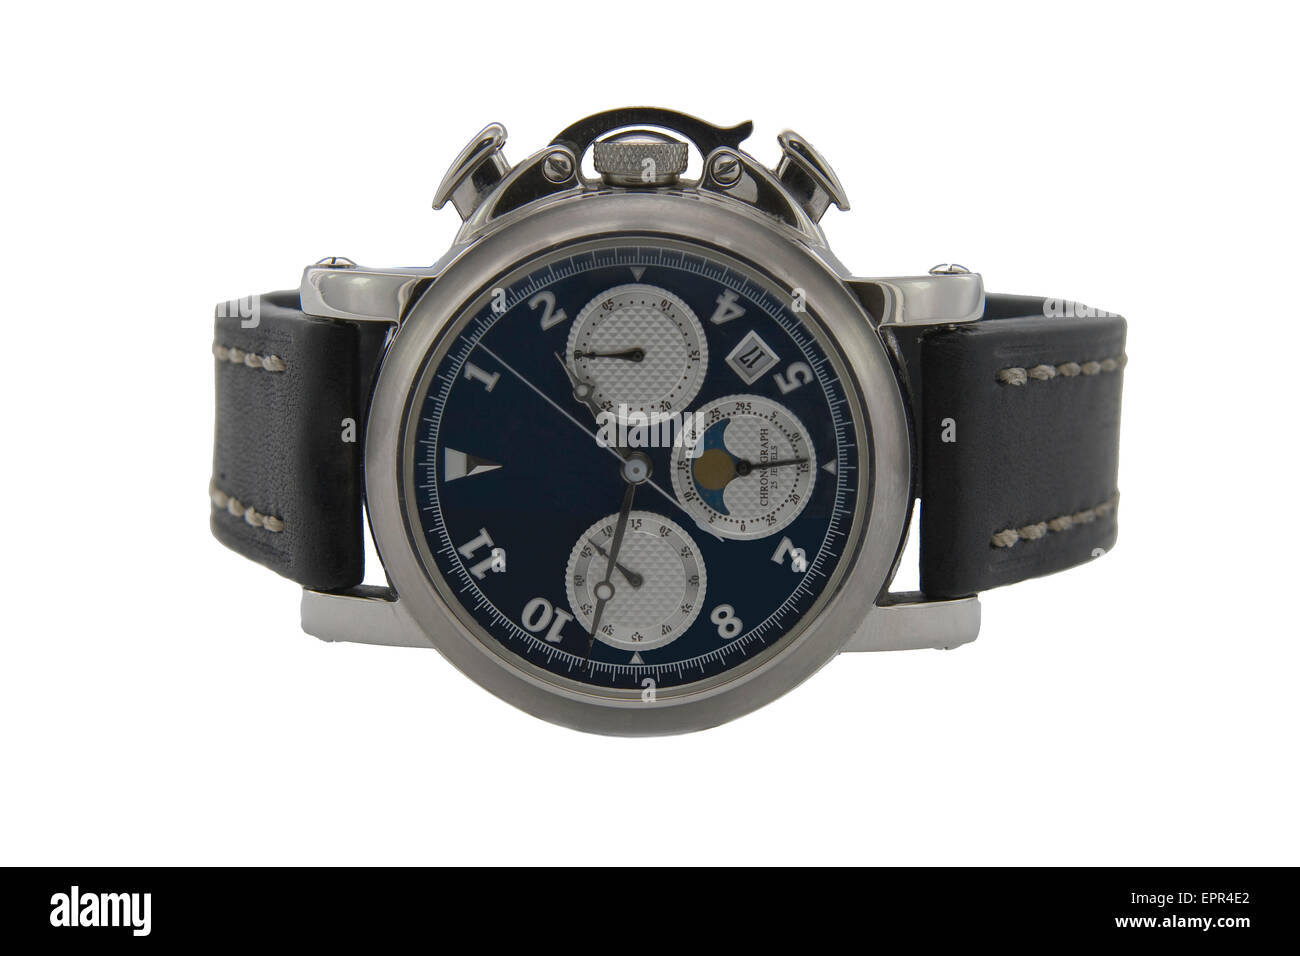 Chronograph watch in white background - Stock Image